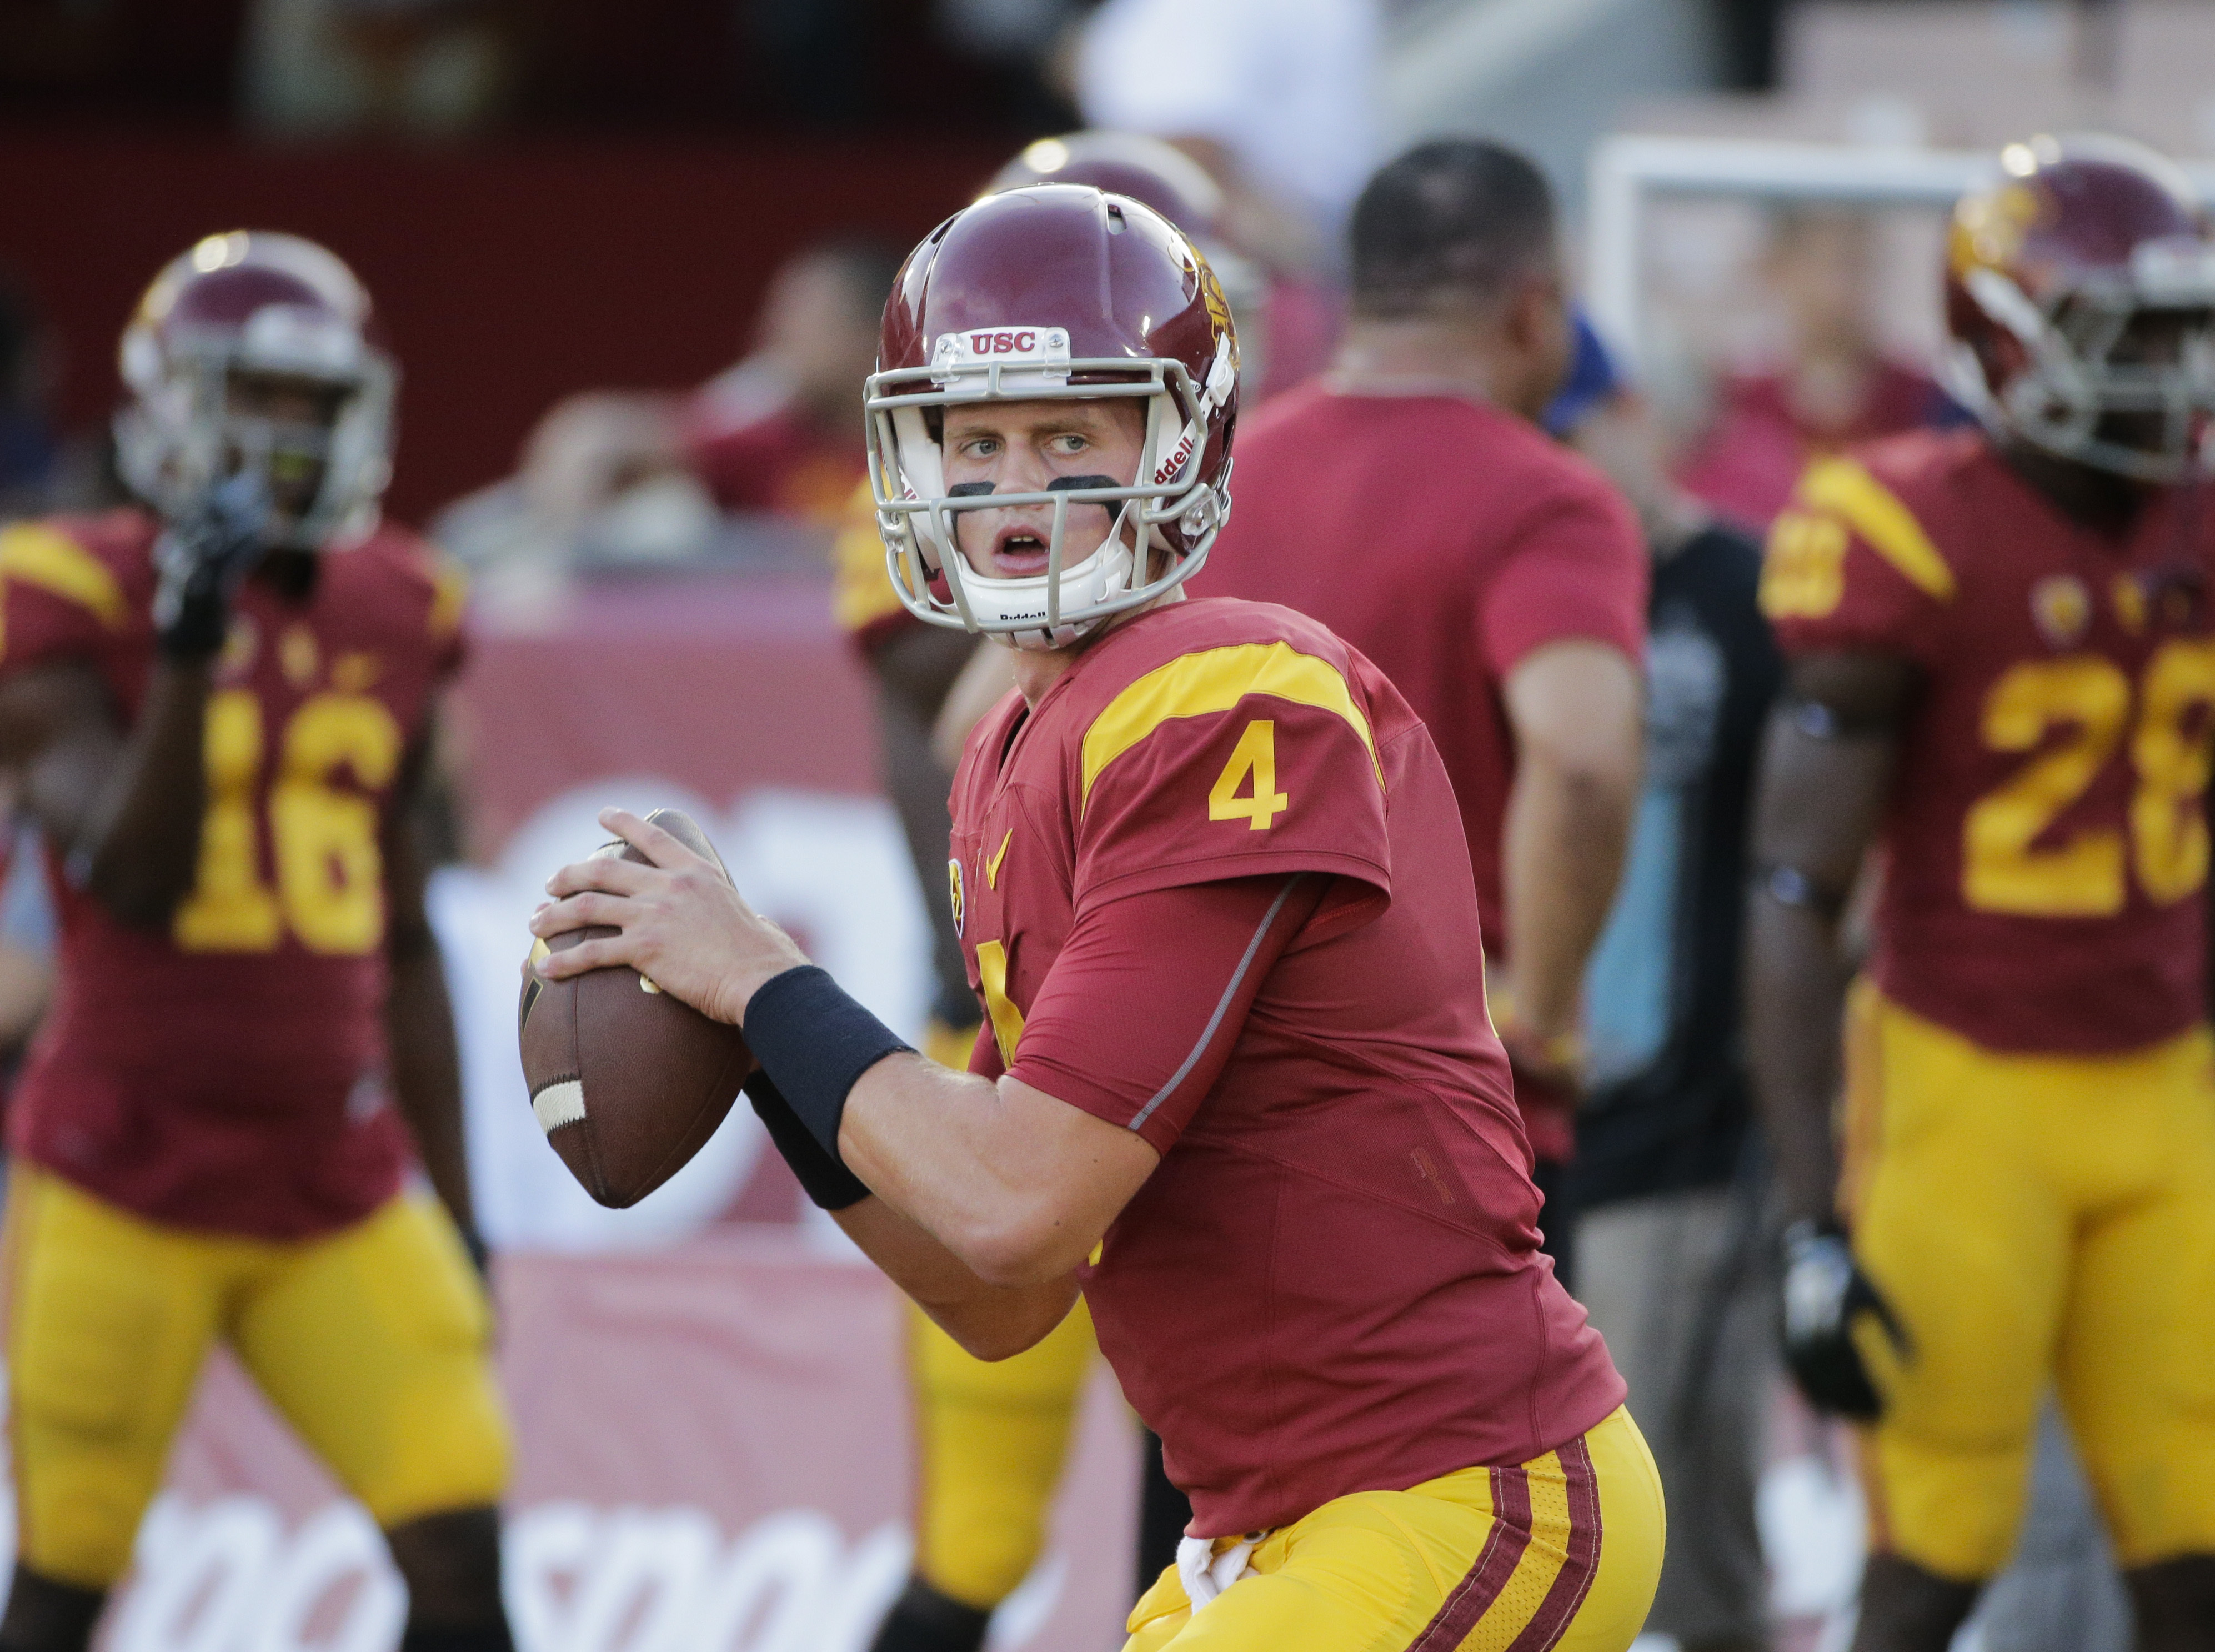 FILE - In this Oct. 8, 2015, file photo, Southern California quarterback Max Browne warms up before an NCAA college football game against Washington, in Los Angeles. Max Browne insists he wouldn't want slightly less daunting circumstances for his long-awa